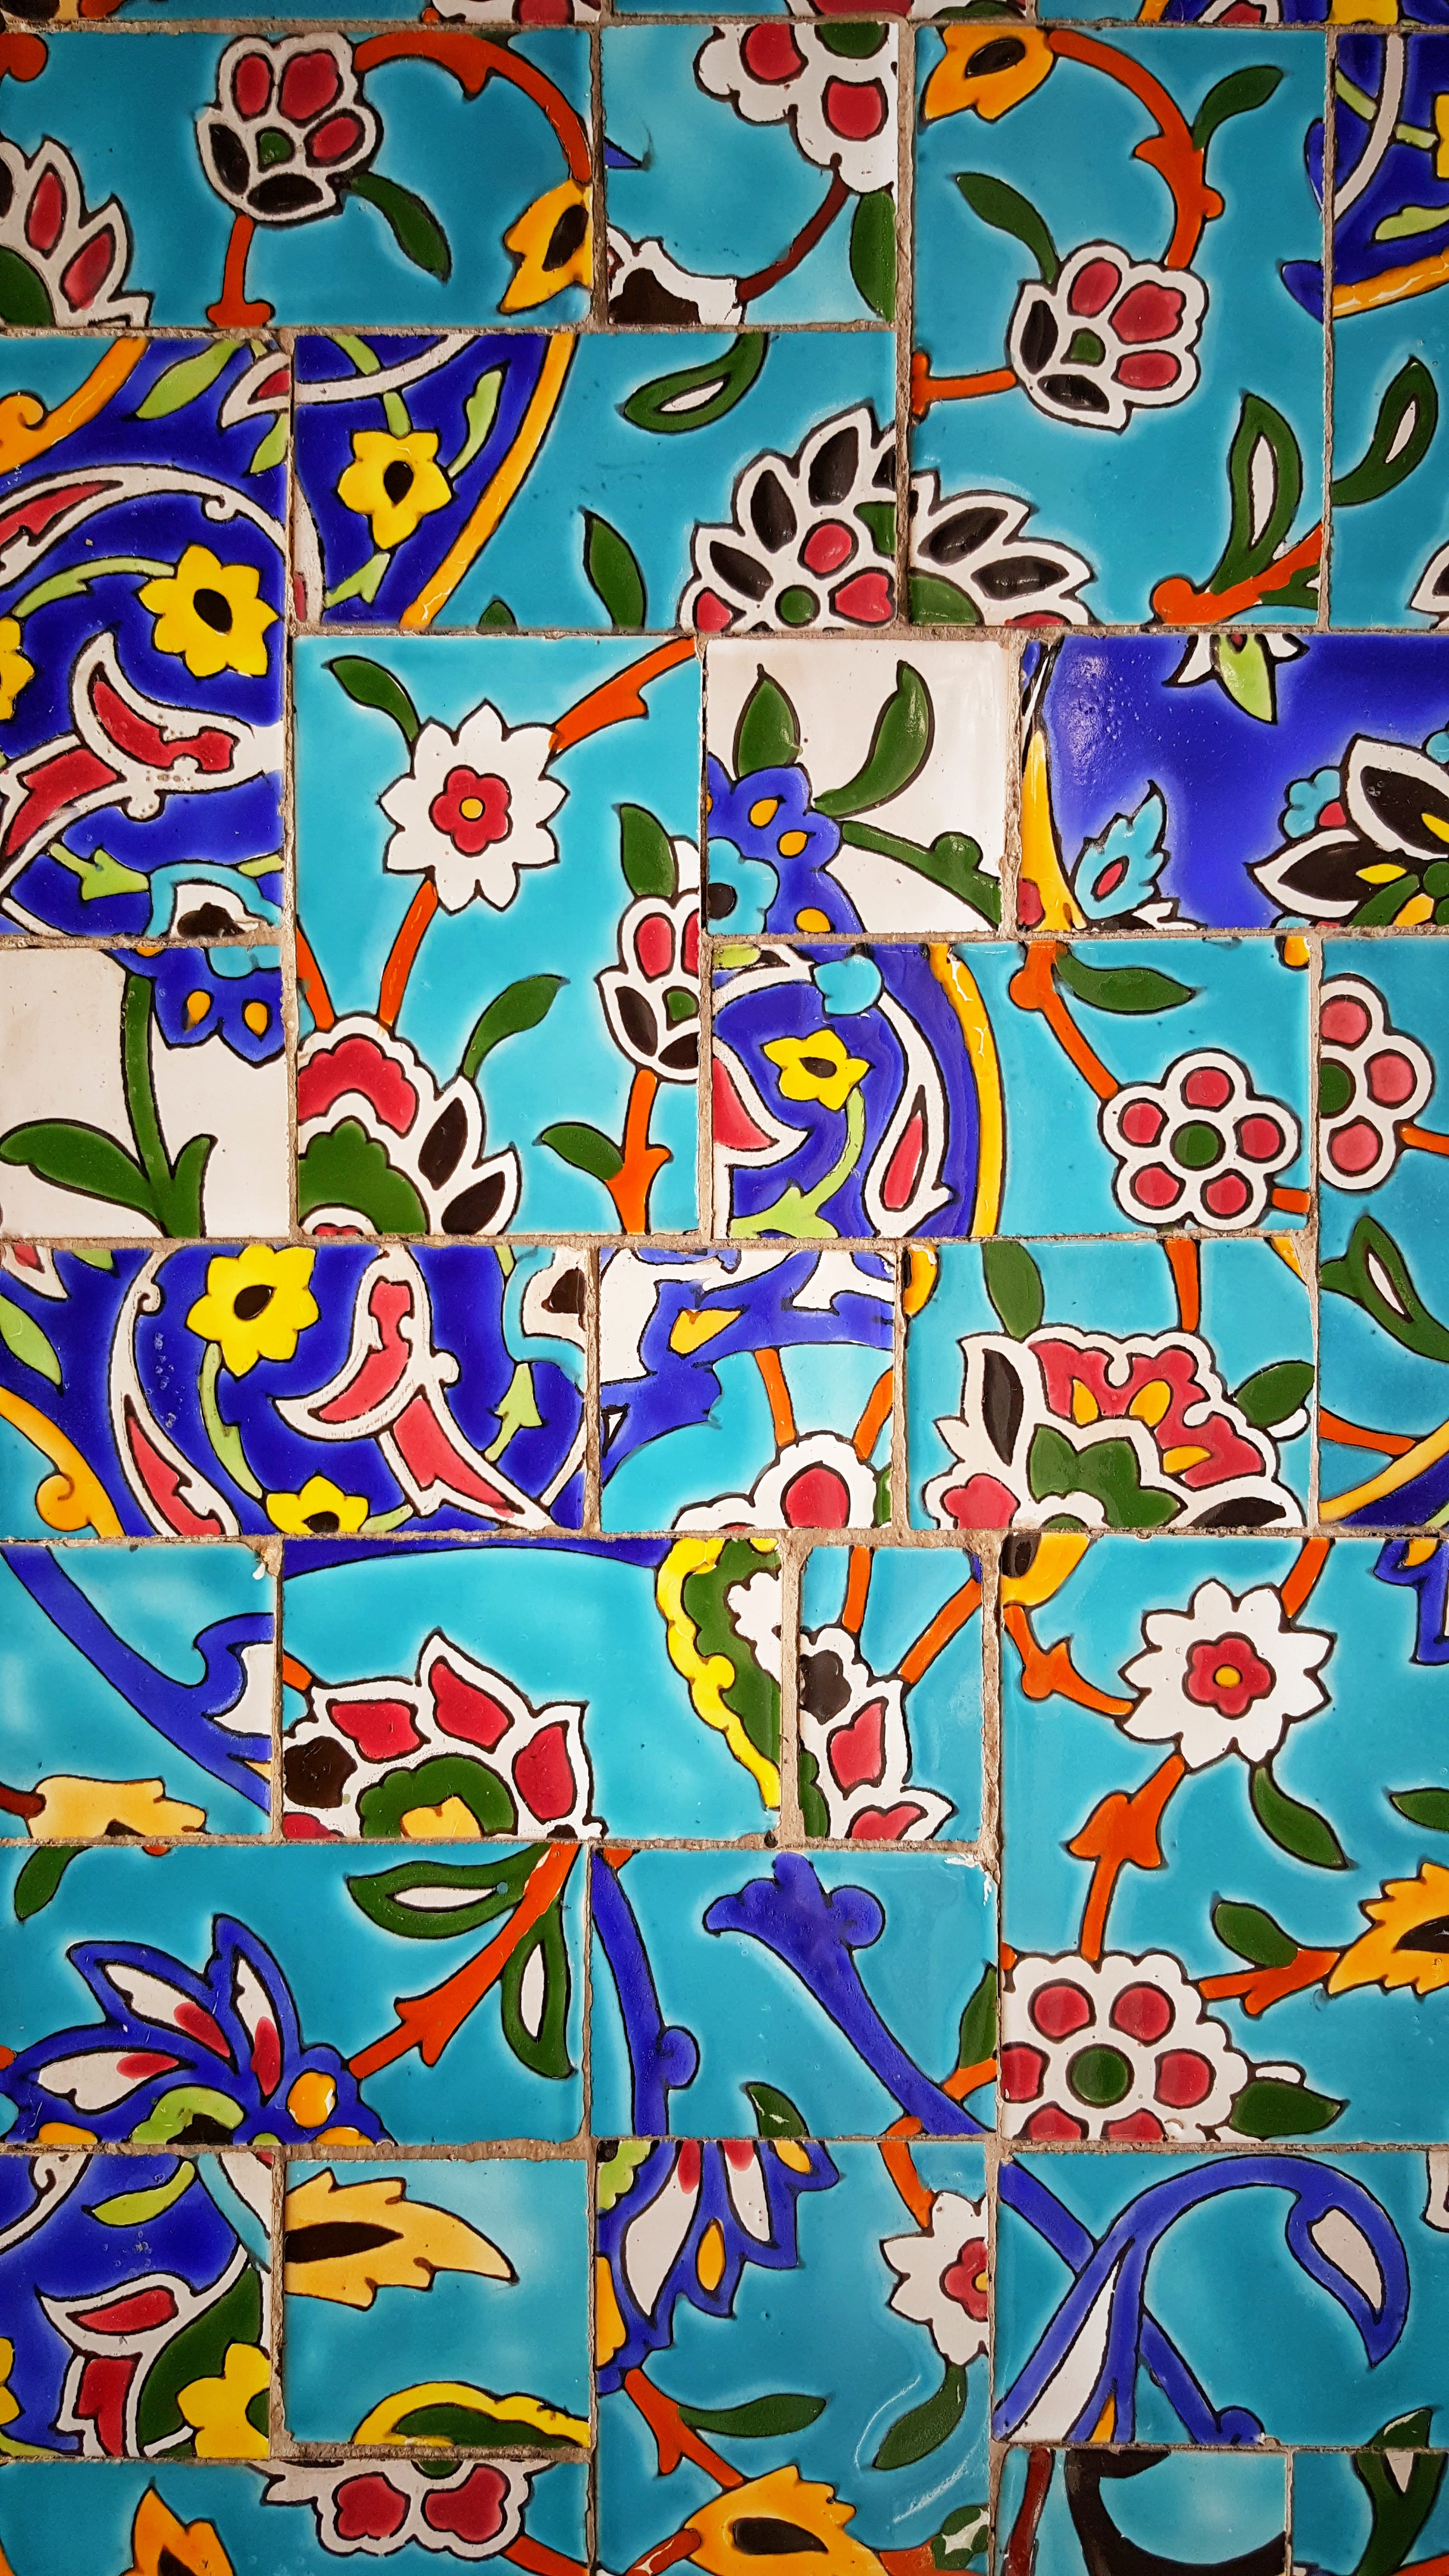 multicolored floral tiles